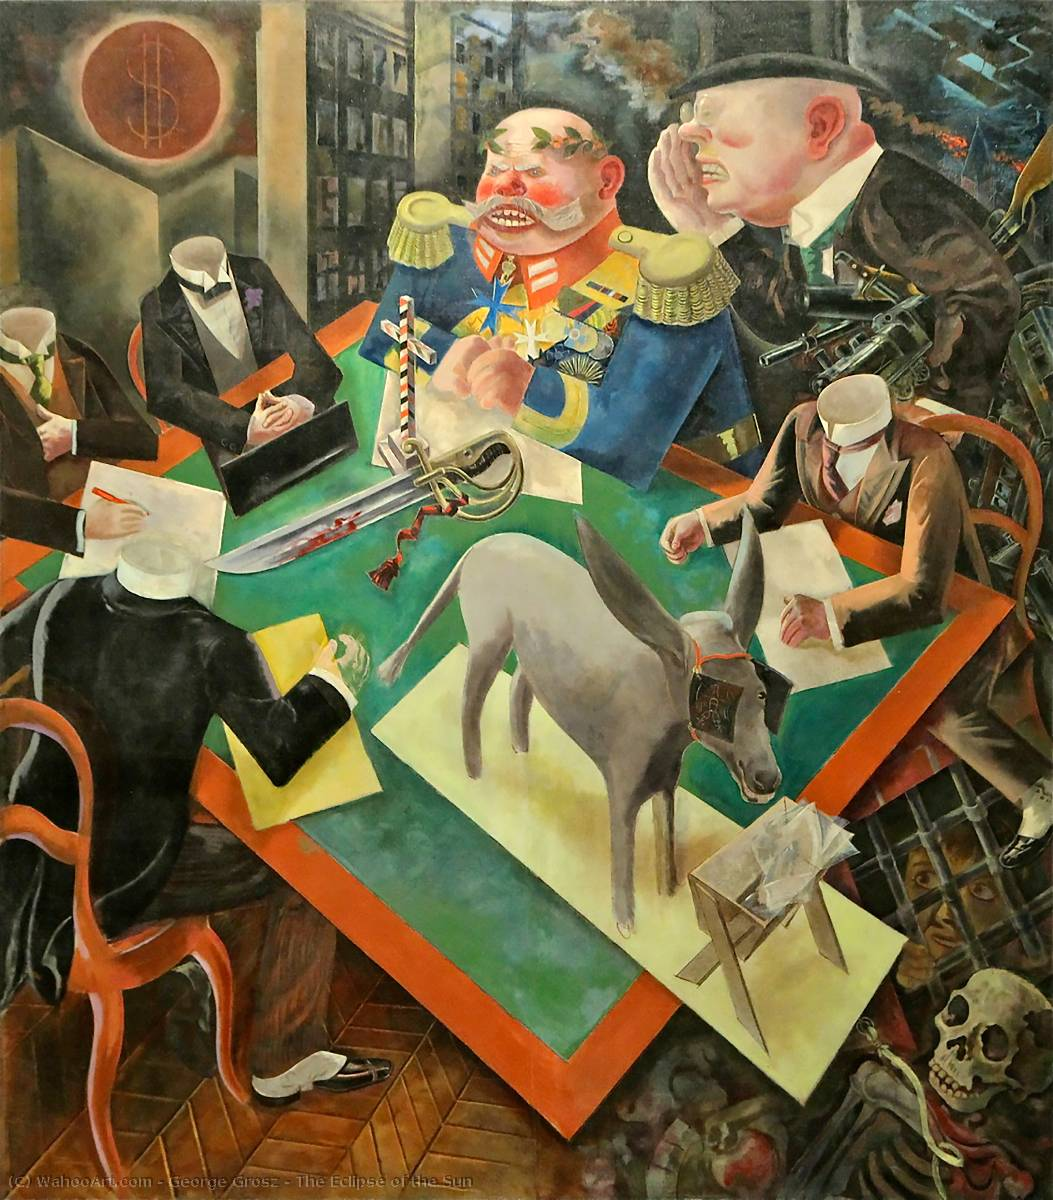 famous painting L eclissi di  dopodomani  sole  of George Grosz